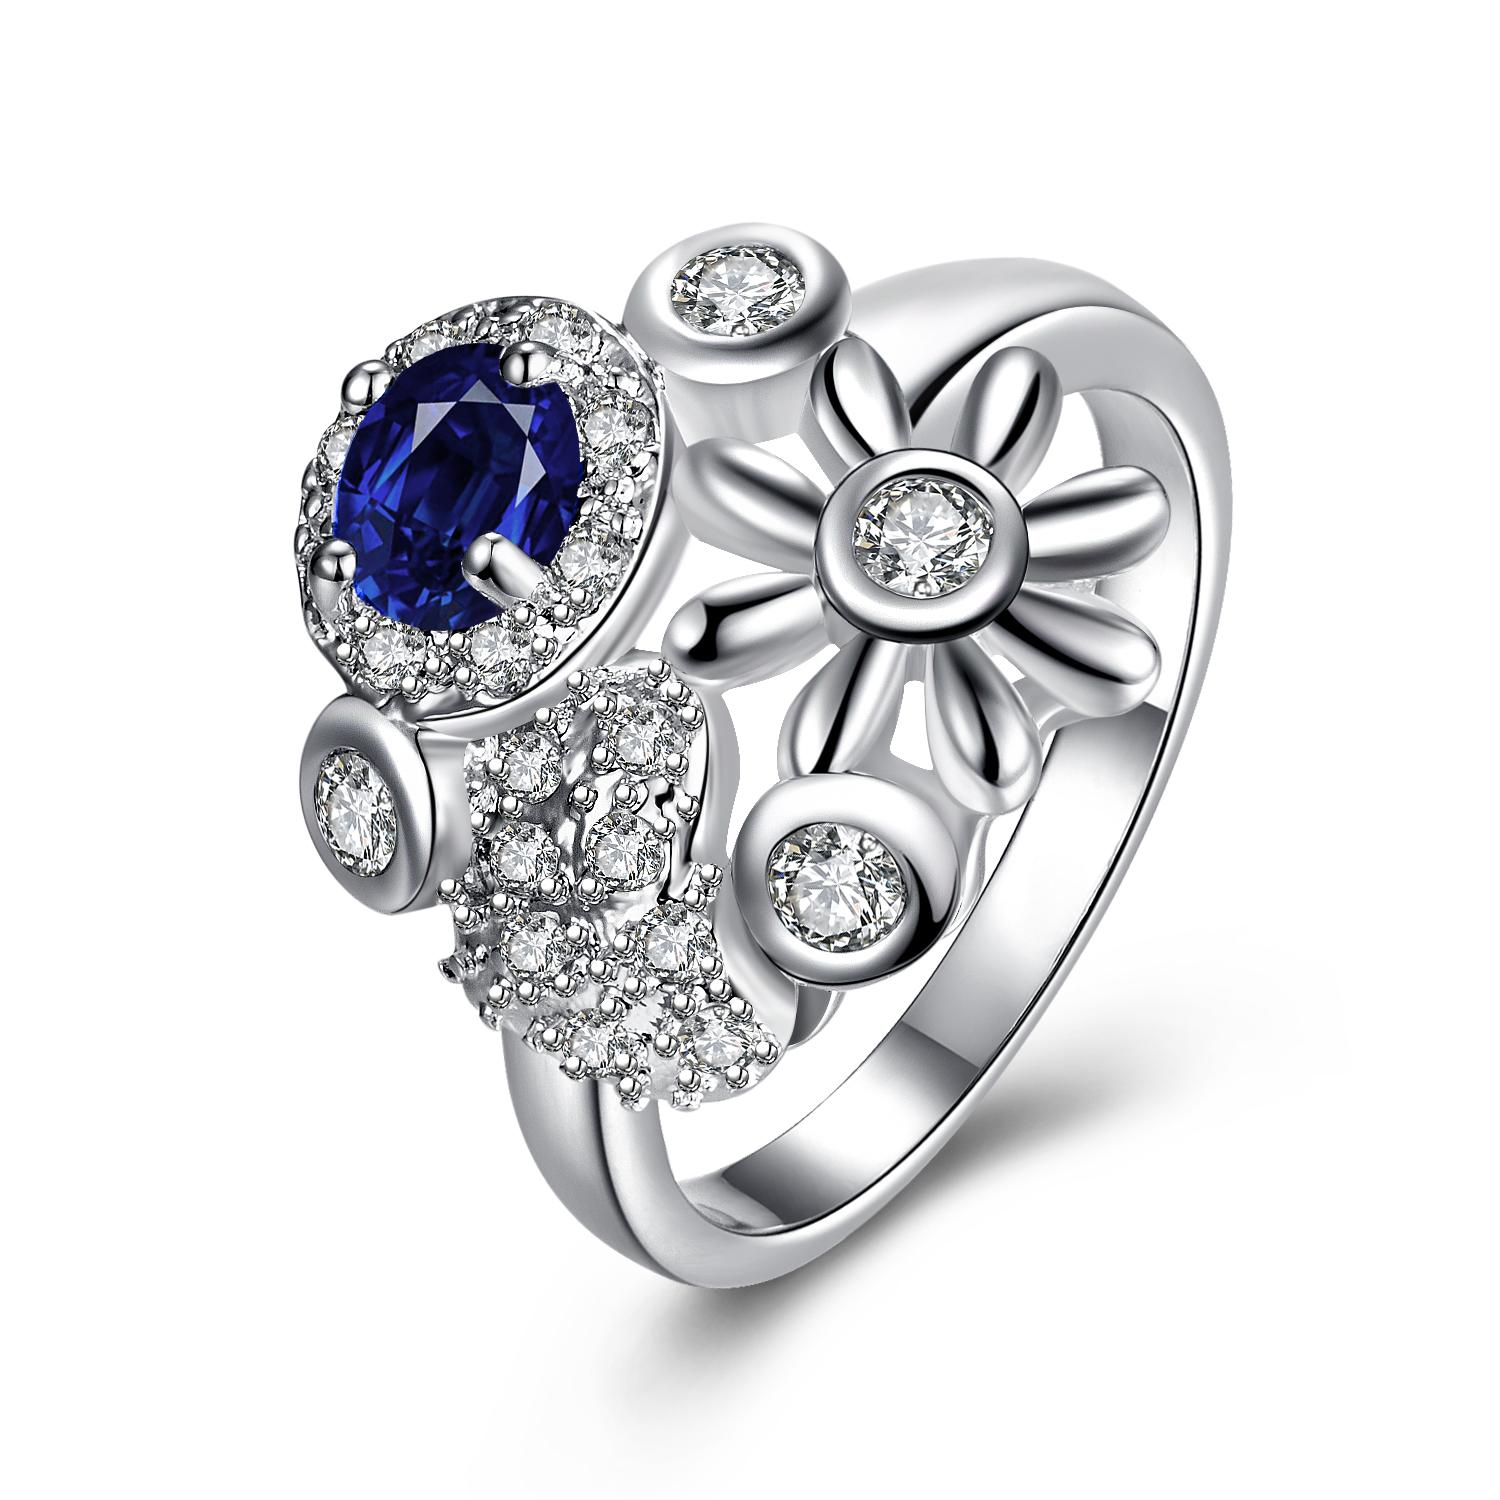 Vienna Jewelry Mock Sapphire Multi-Charms Inserted Petite Ring Size 7